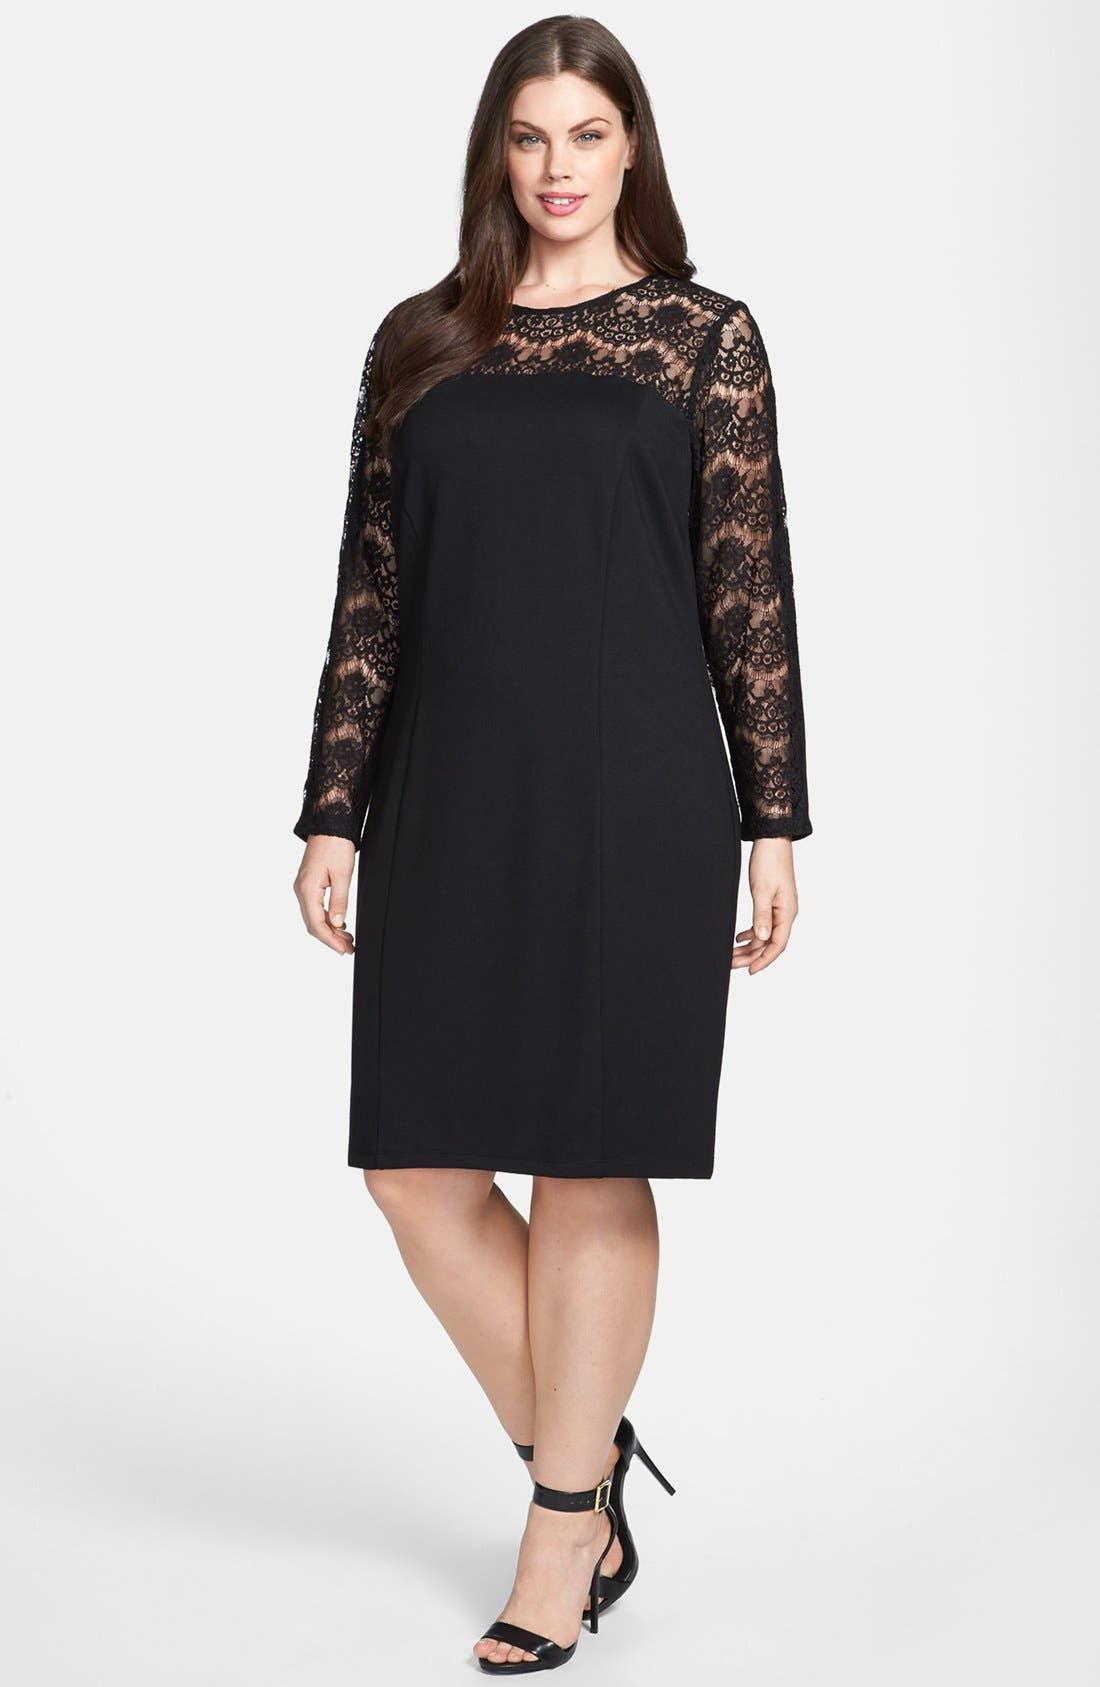 Main Image - Jessica Simpson Lace Dress (Plus Size)